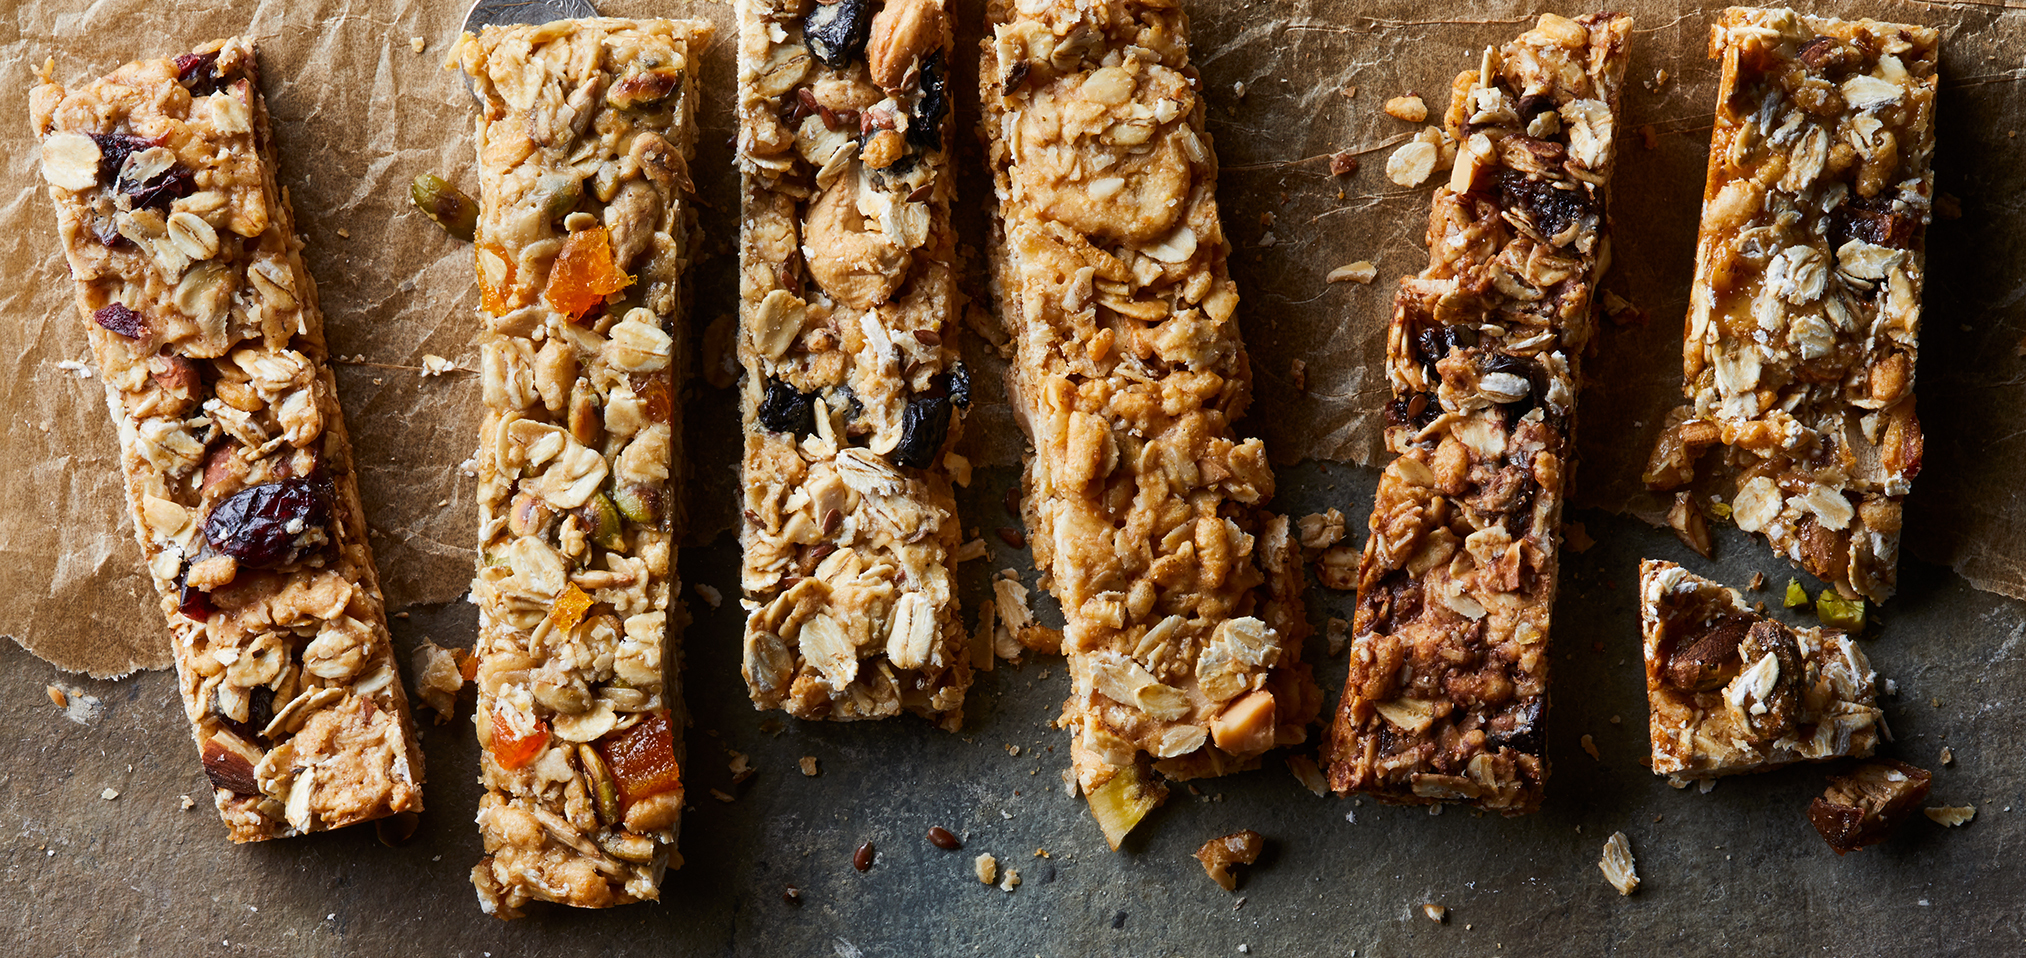 The Only Formula You Need to Make the Best Healthy Homemade Granola Bars